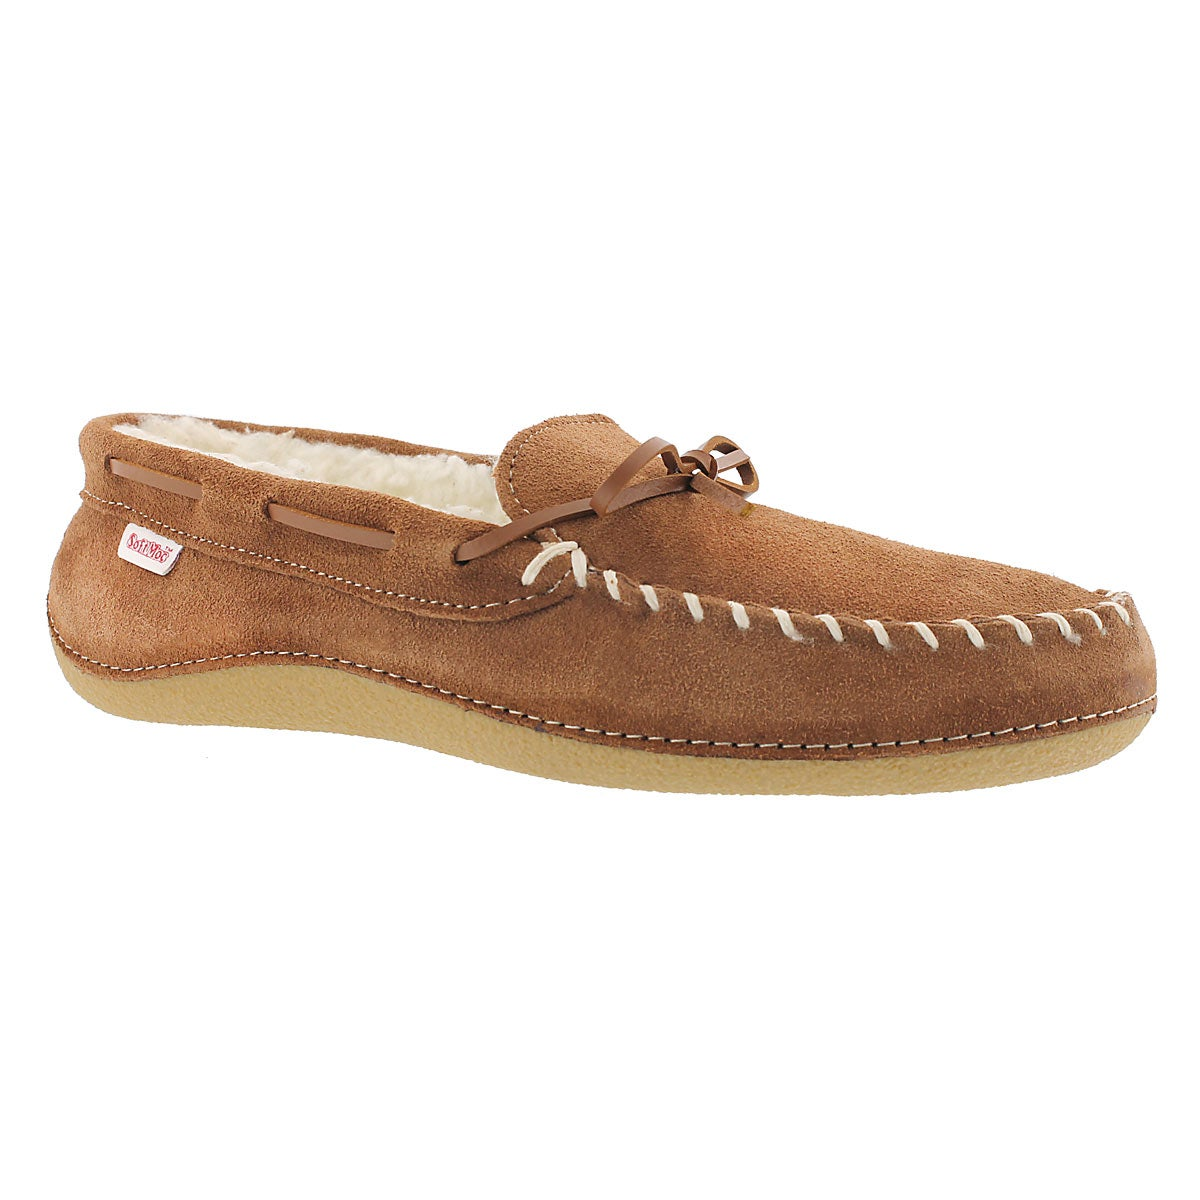 Men's GREG hazlenut fleece lined moccasins